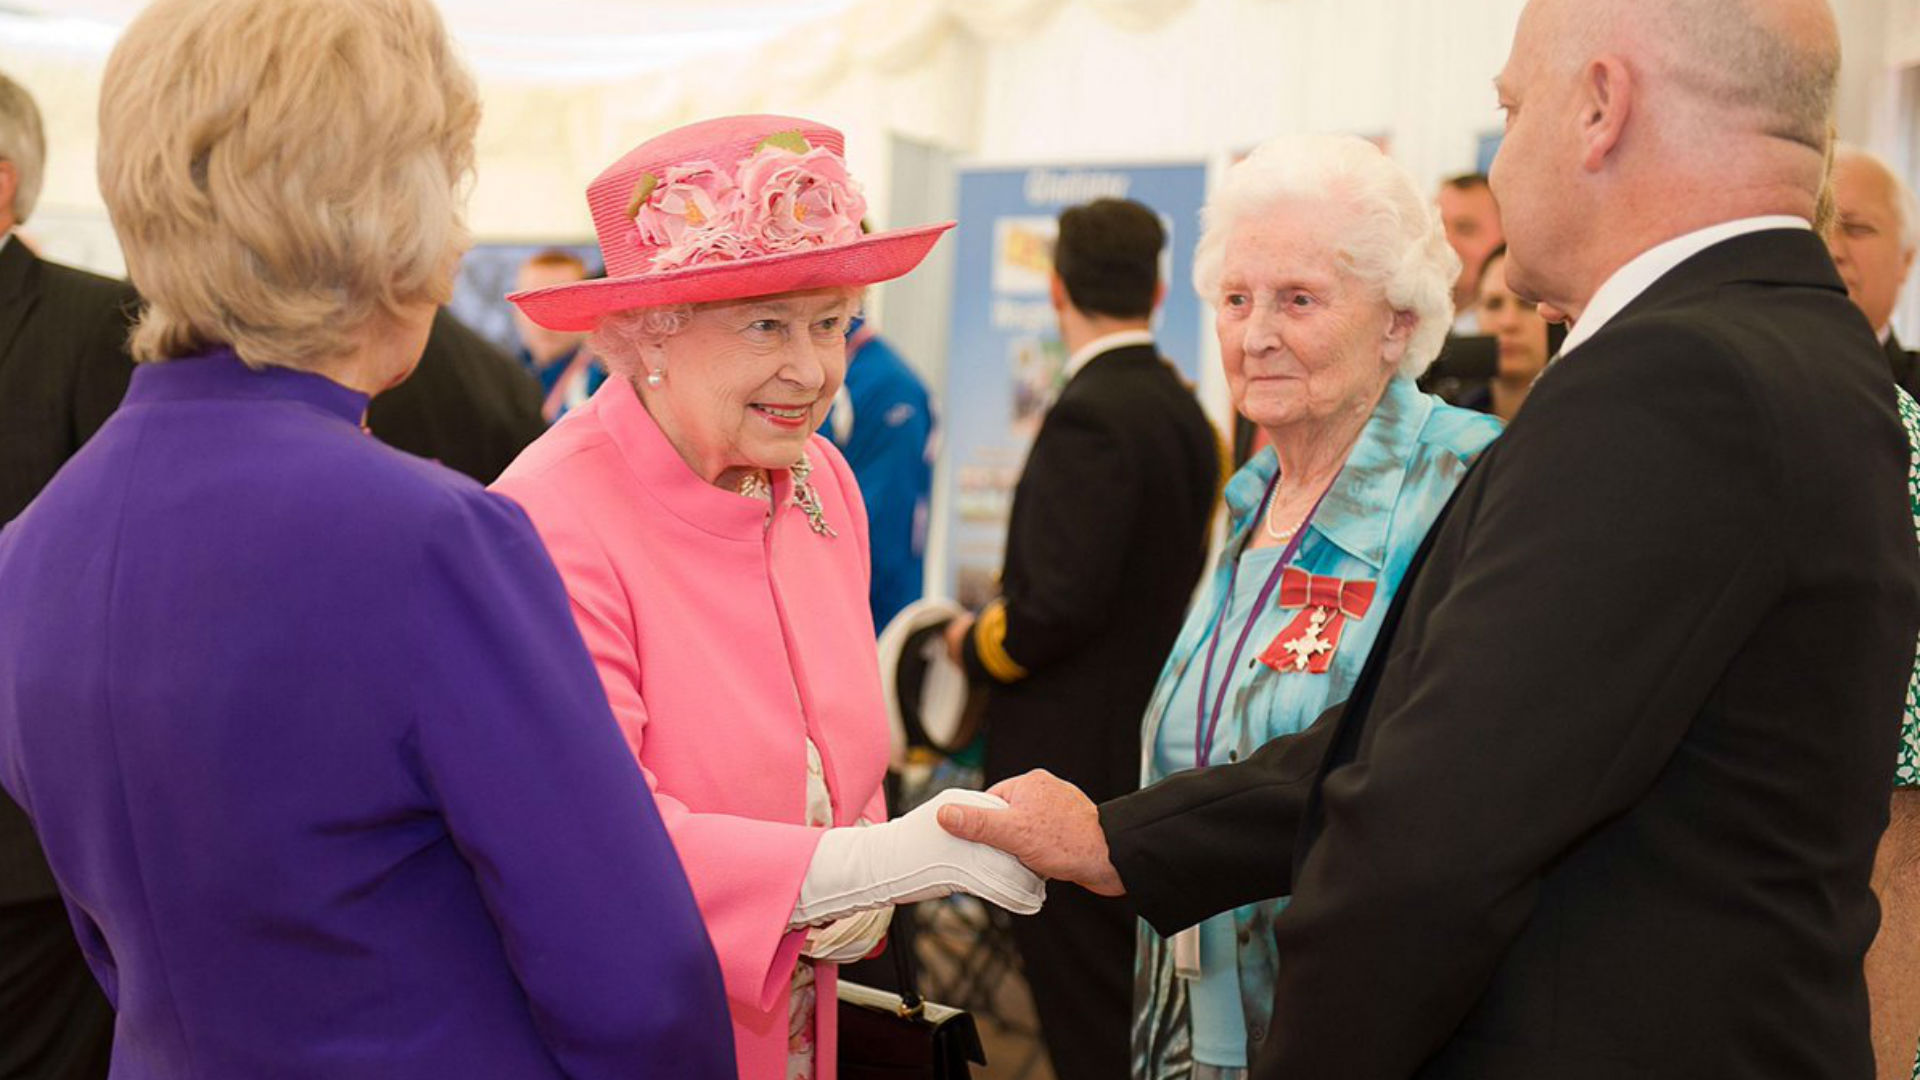 The Queen NCVO reception